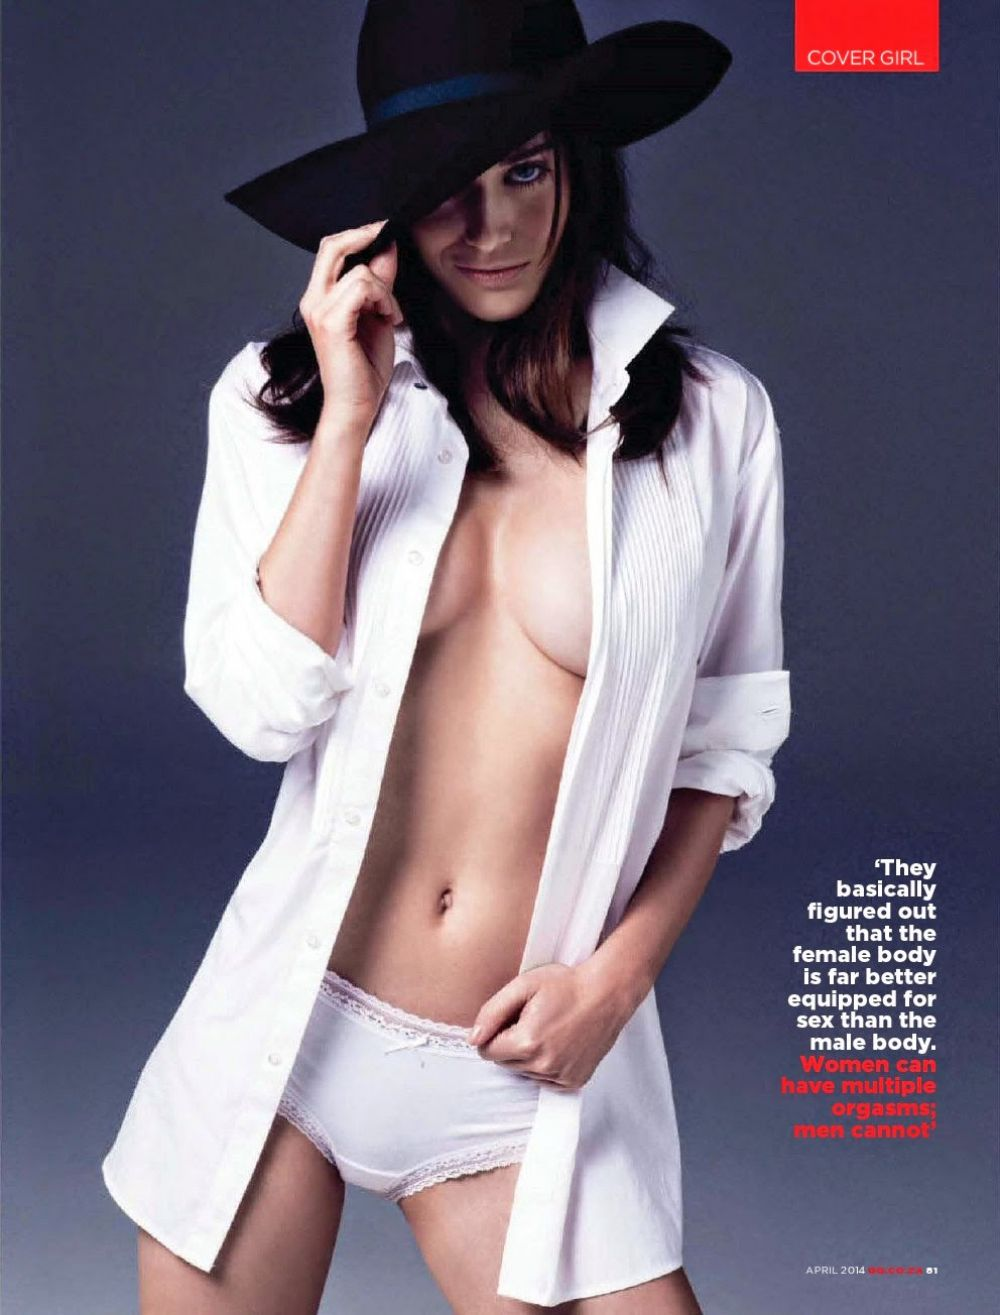 LIZZY CAPLAN in GQ Magazine, South Africa April 2014 Issue